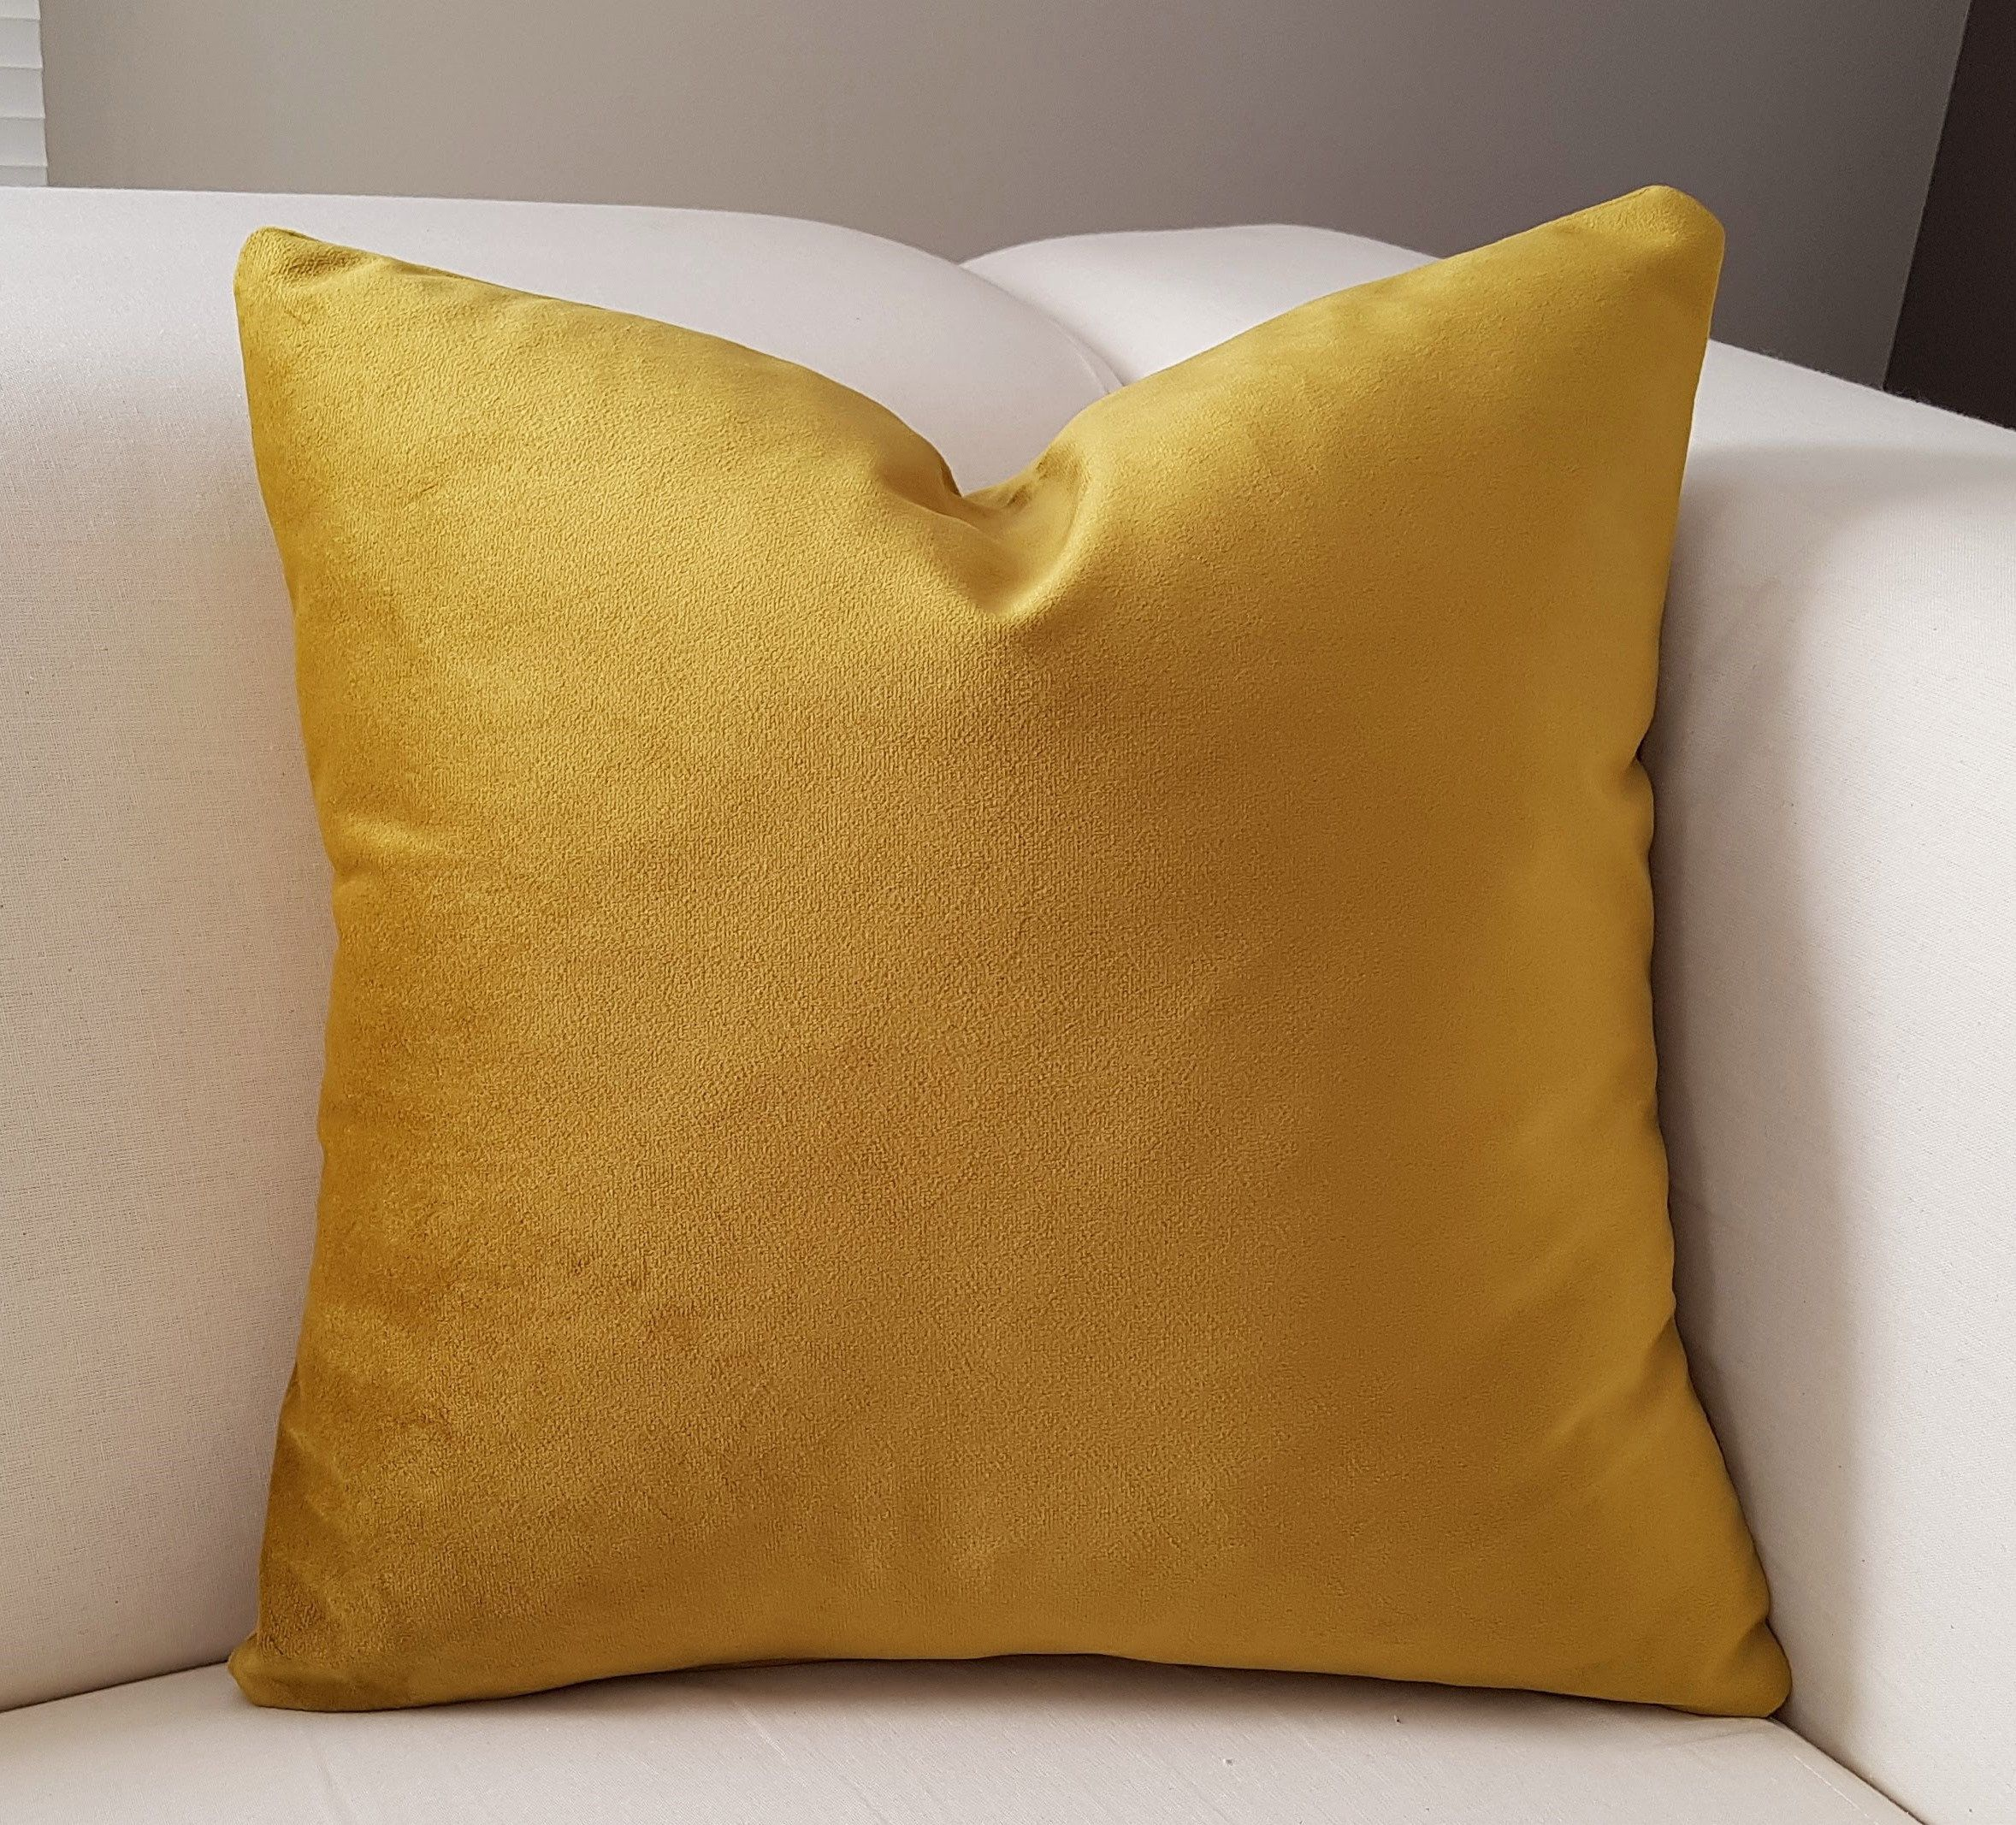 Gold Velvet Pillow Cover Decorative Pillows Gold Throw Pillow Covers Home Decoration Velvet Pillows Velvet Cushion Case Gold Throw Pillows Velvet Pillow Covers Velvet Pillows